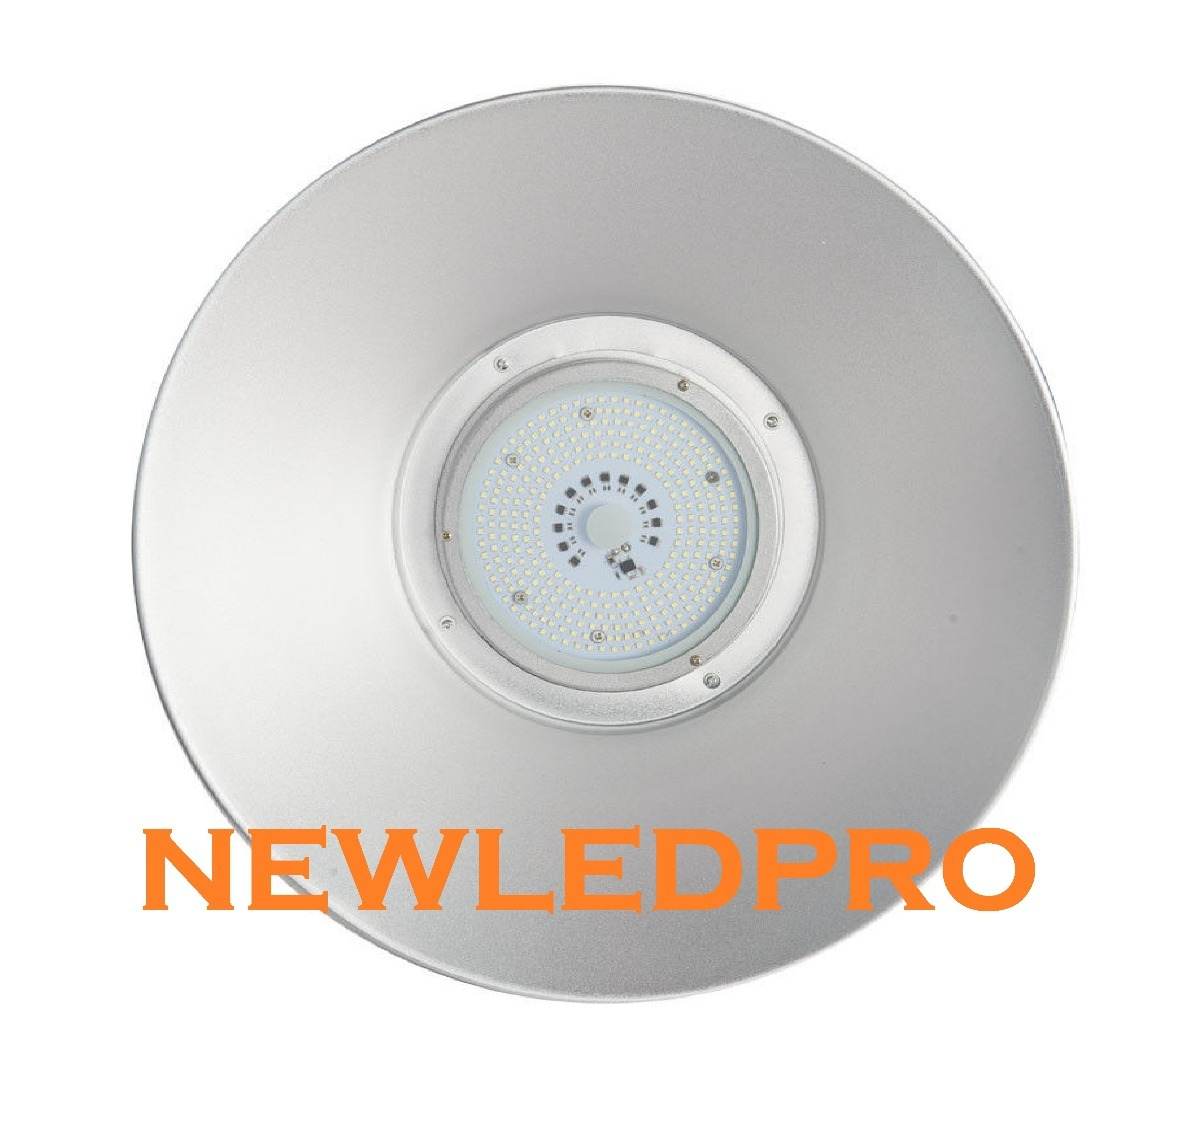 Foco Campana Multi Led 100 Watts 10 000 Lm Smd3030 Newledpro  # Muebles Bodega Lm